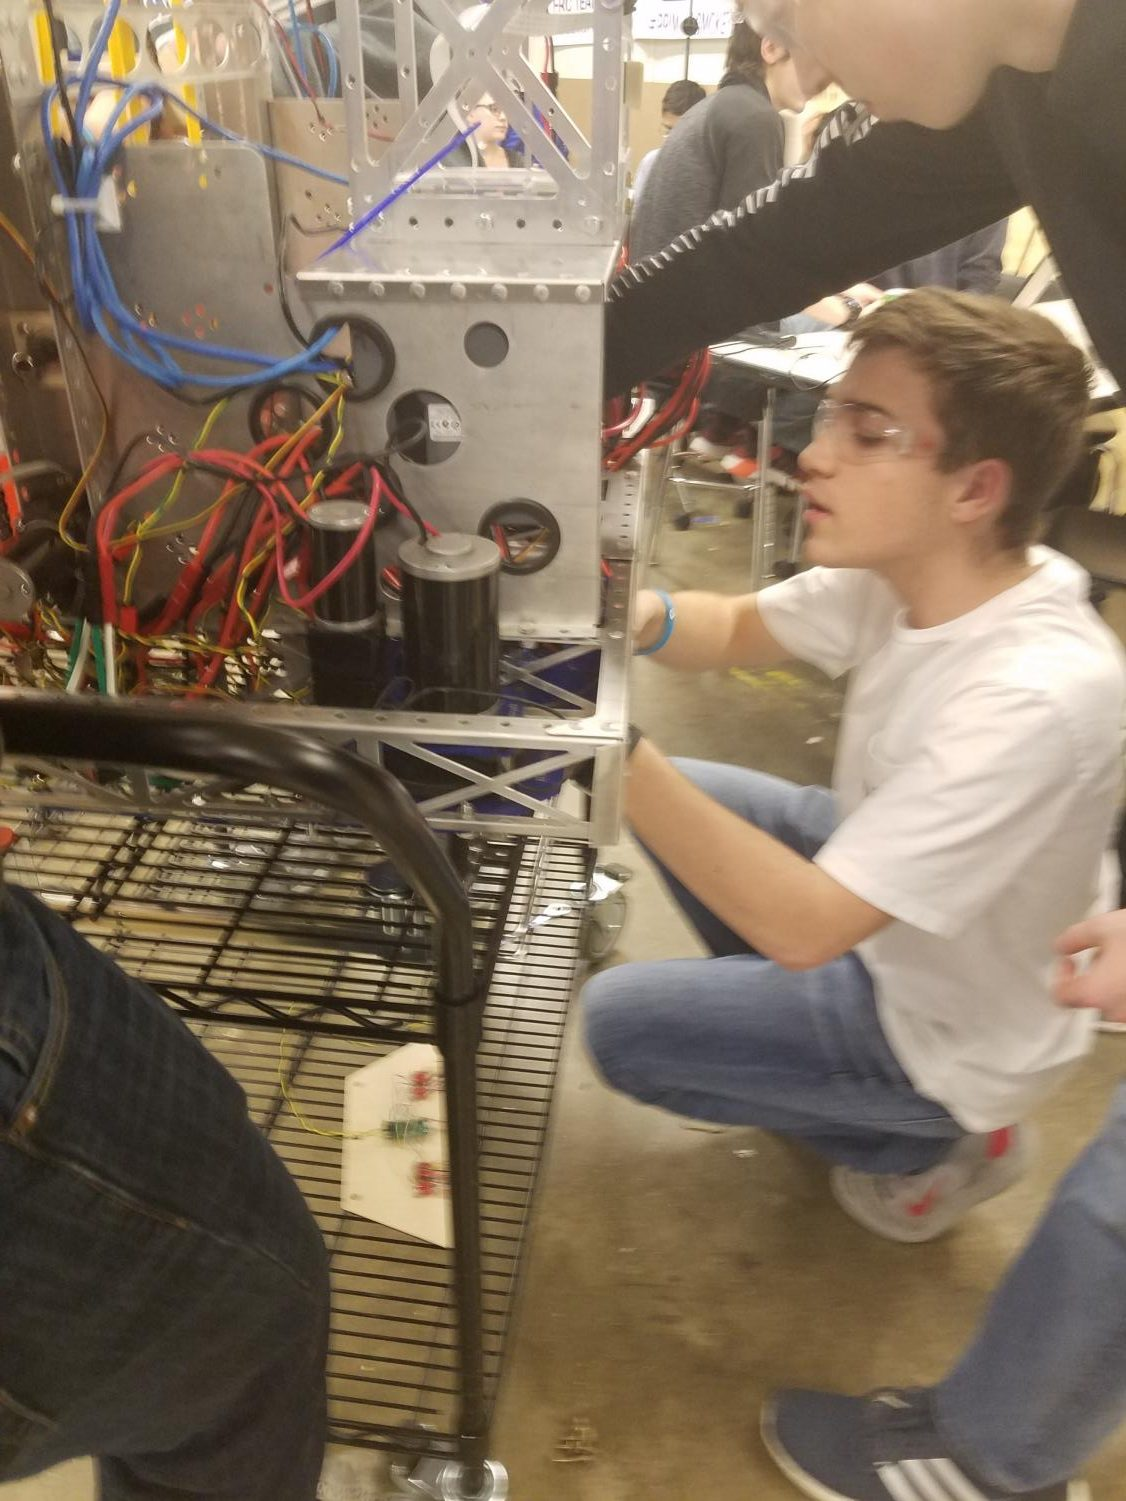 John McConnell, sophmore, is putting the finishing touches on the robot. Their upcoming competition is later next week.